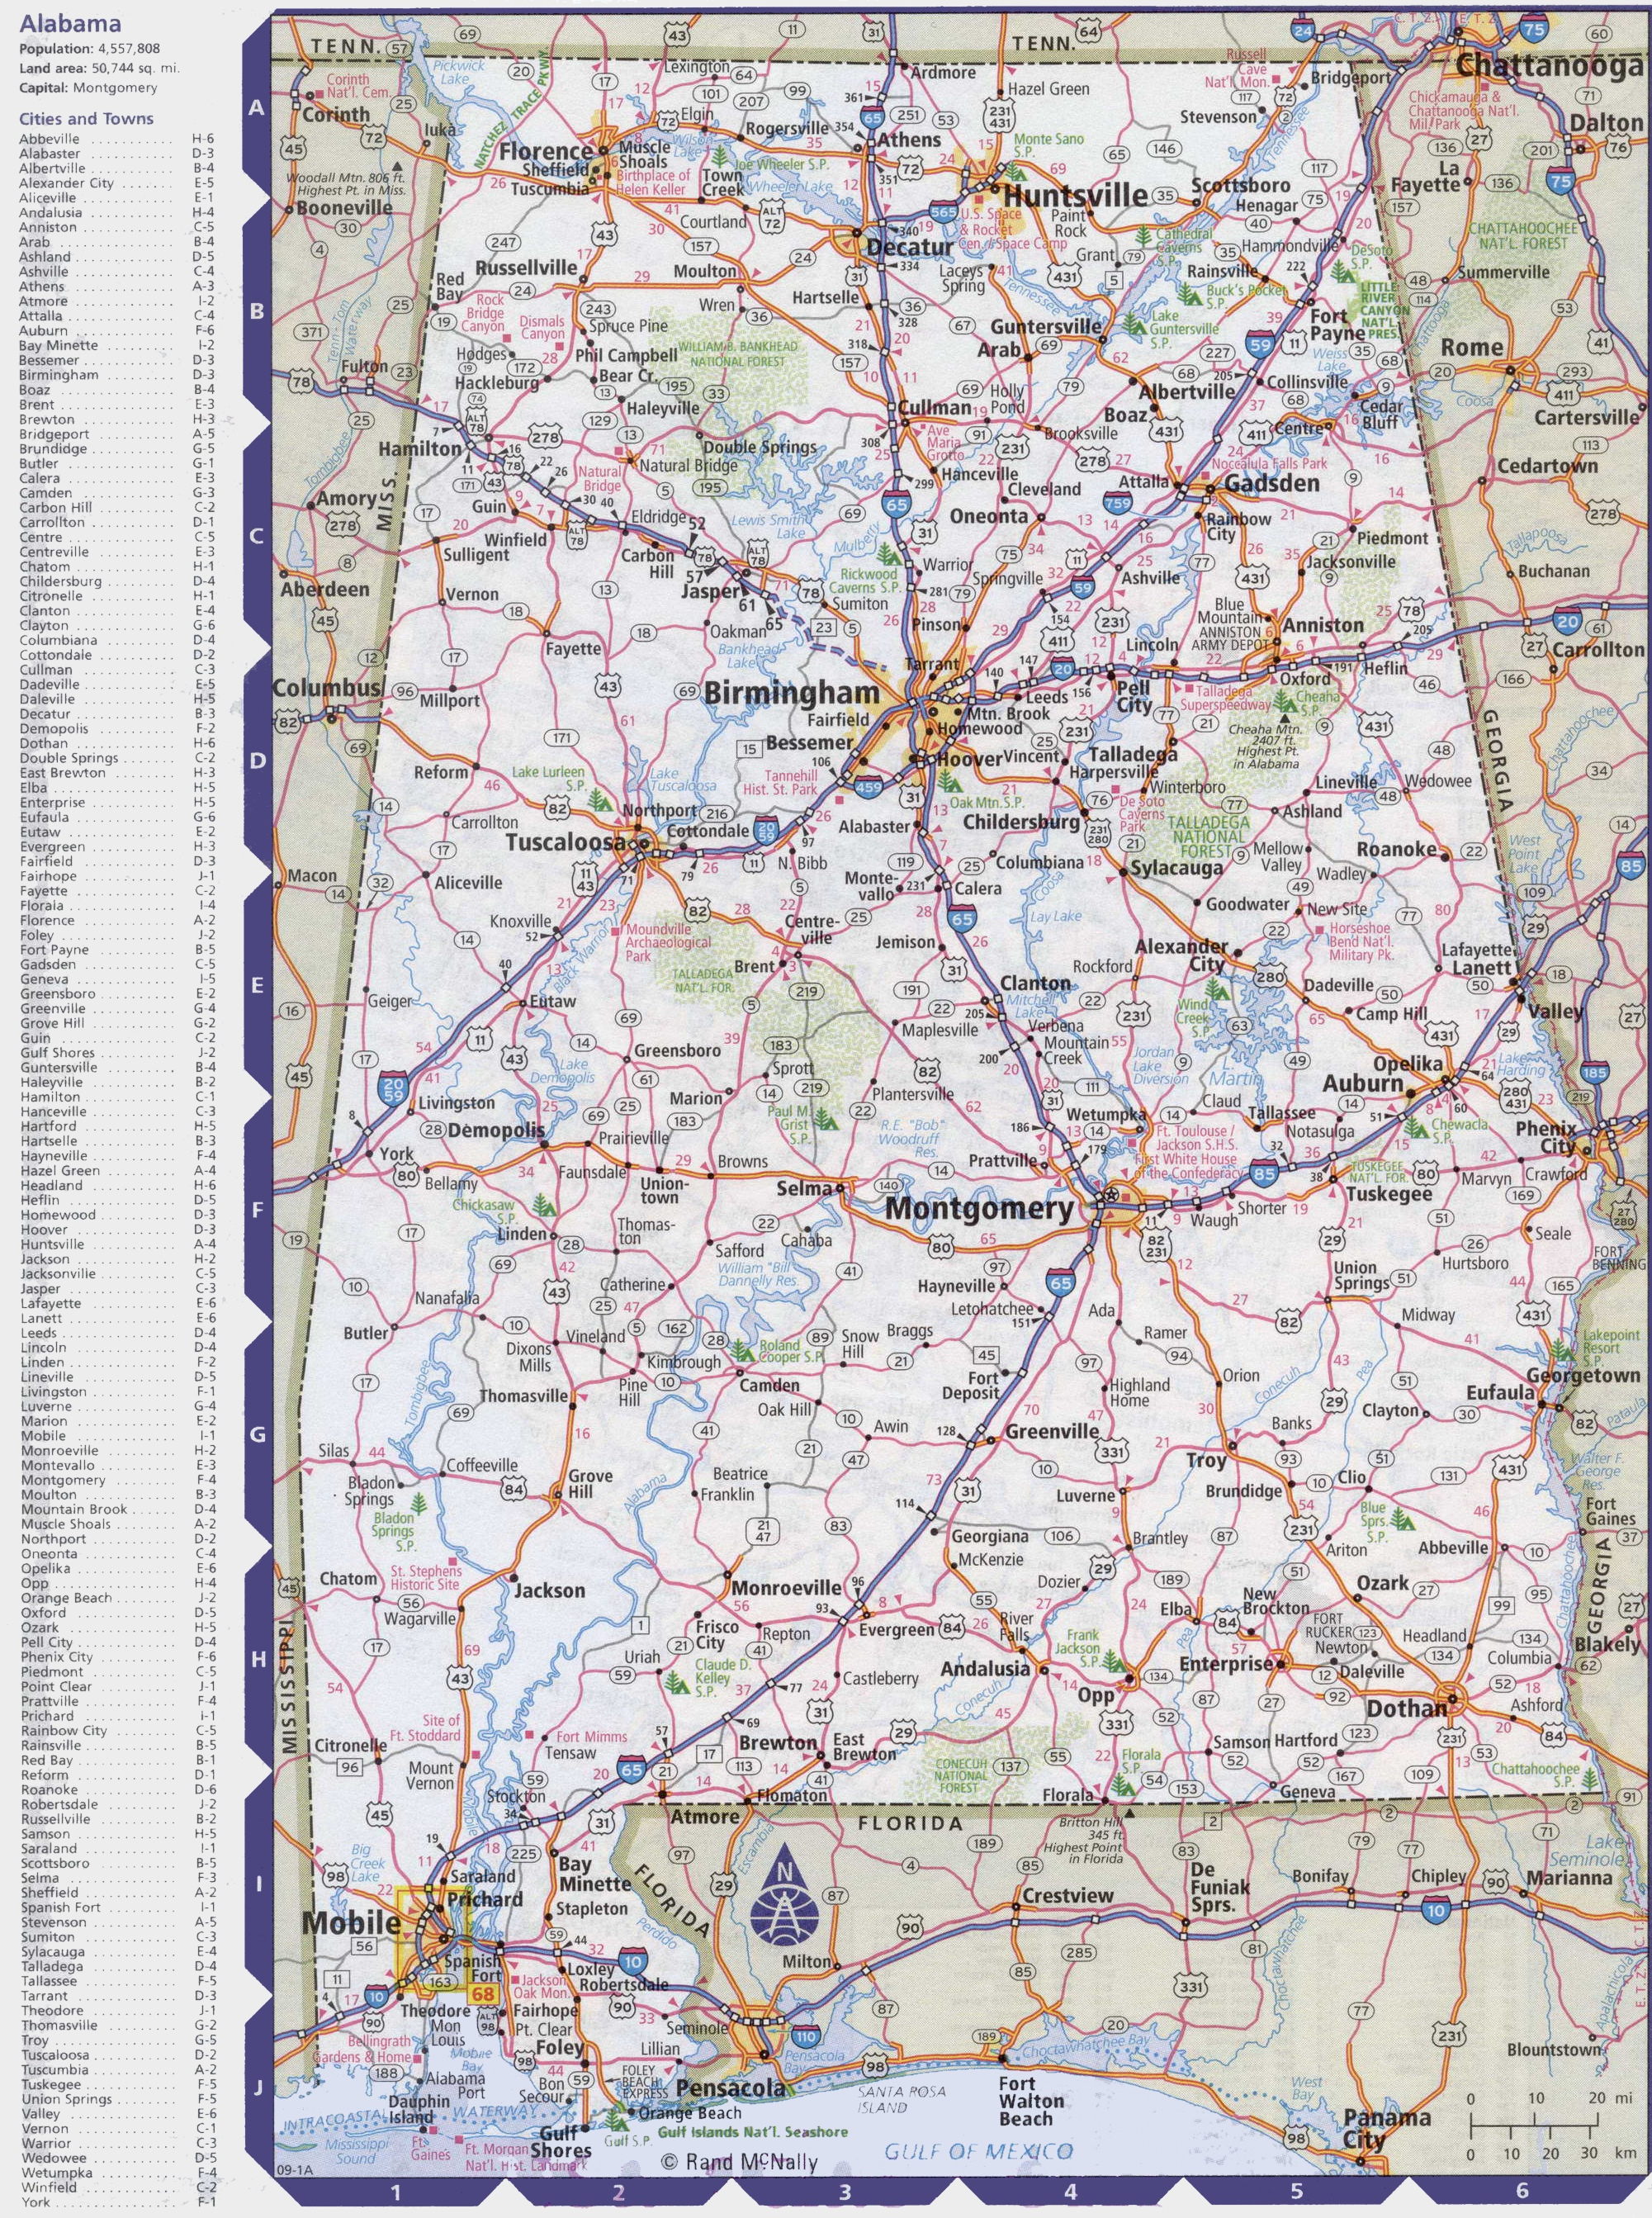 Map of Alabama with cities and towns Map Of Alabama Usa on map of nevada usa, map of georgia usa, map of st. vincent and the grenadines, map of america usa, map of san antonio usa, map of northeastern usa, map of northwestern usa, map of midwest states usa, map of southern usa, map of the south usa, map of carolinas usa, map delaware usa, map arkansas usa, map of washington dc usa, map of richmond usa, map of mexico usa, map of southeast usa, map of boston usa, colorado map usa, map of pacific northwest usa,